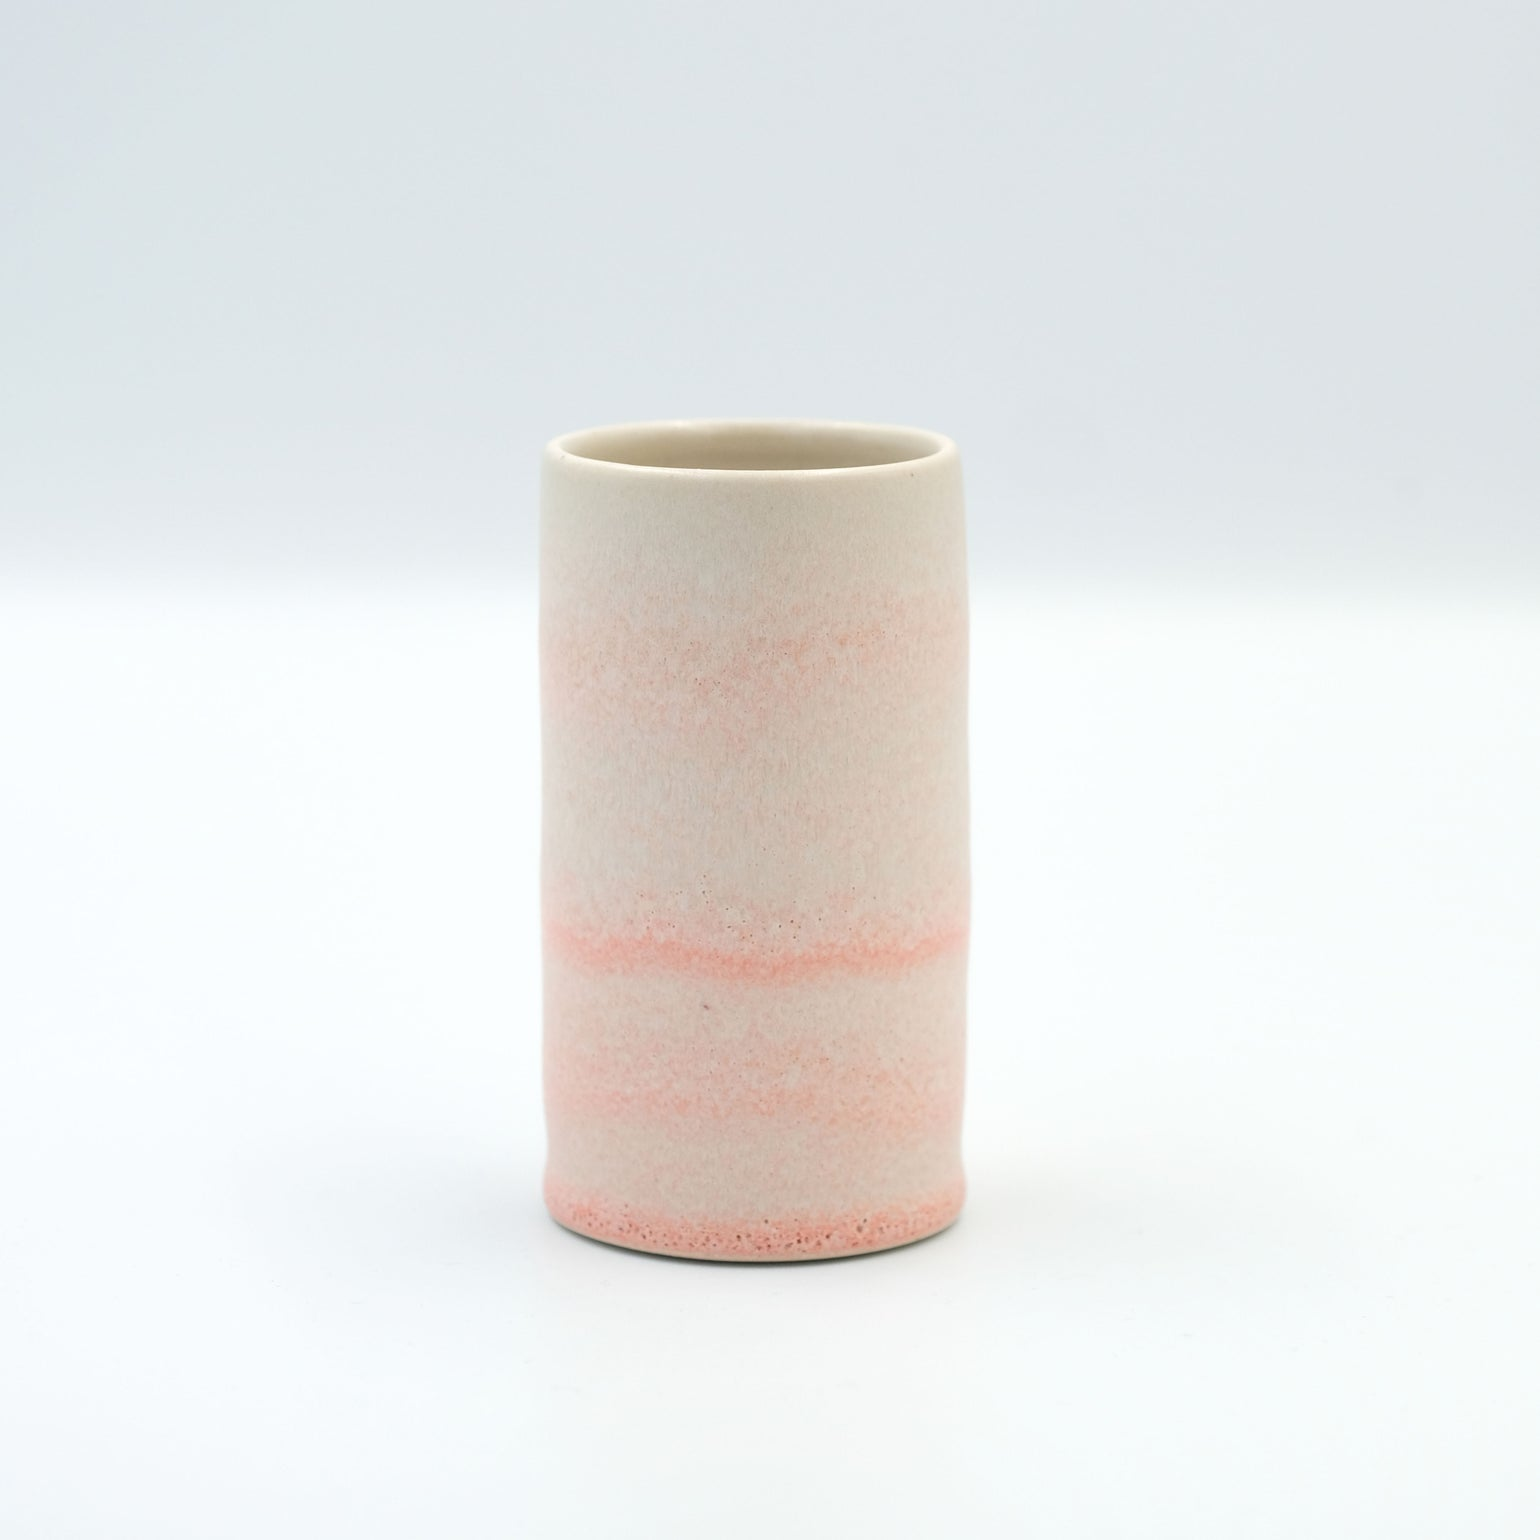 Image of MINI CYLINDER IN CORAL GLAZE